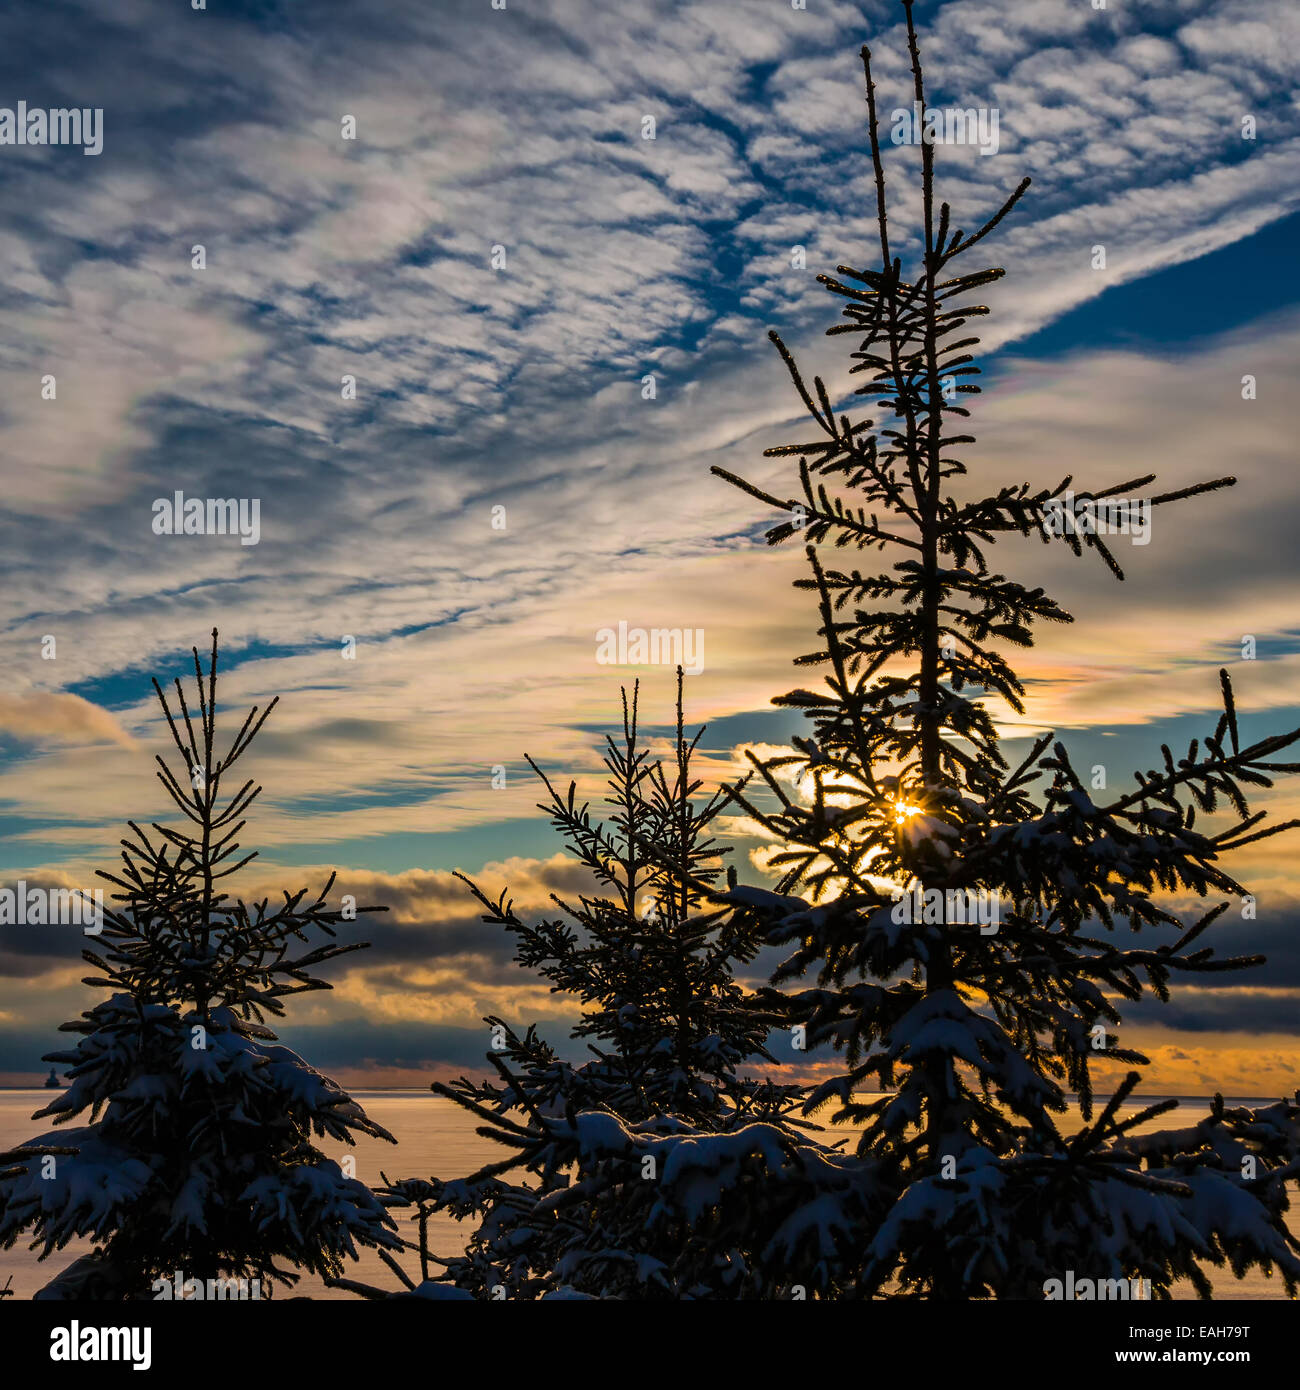 Spruce tree  silhouettes against a winter sky at sunset. - Stock Image